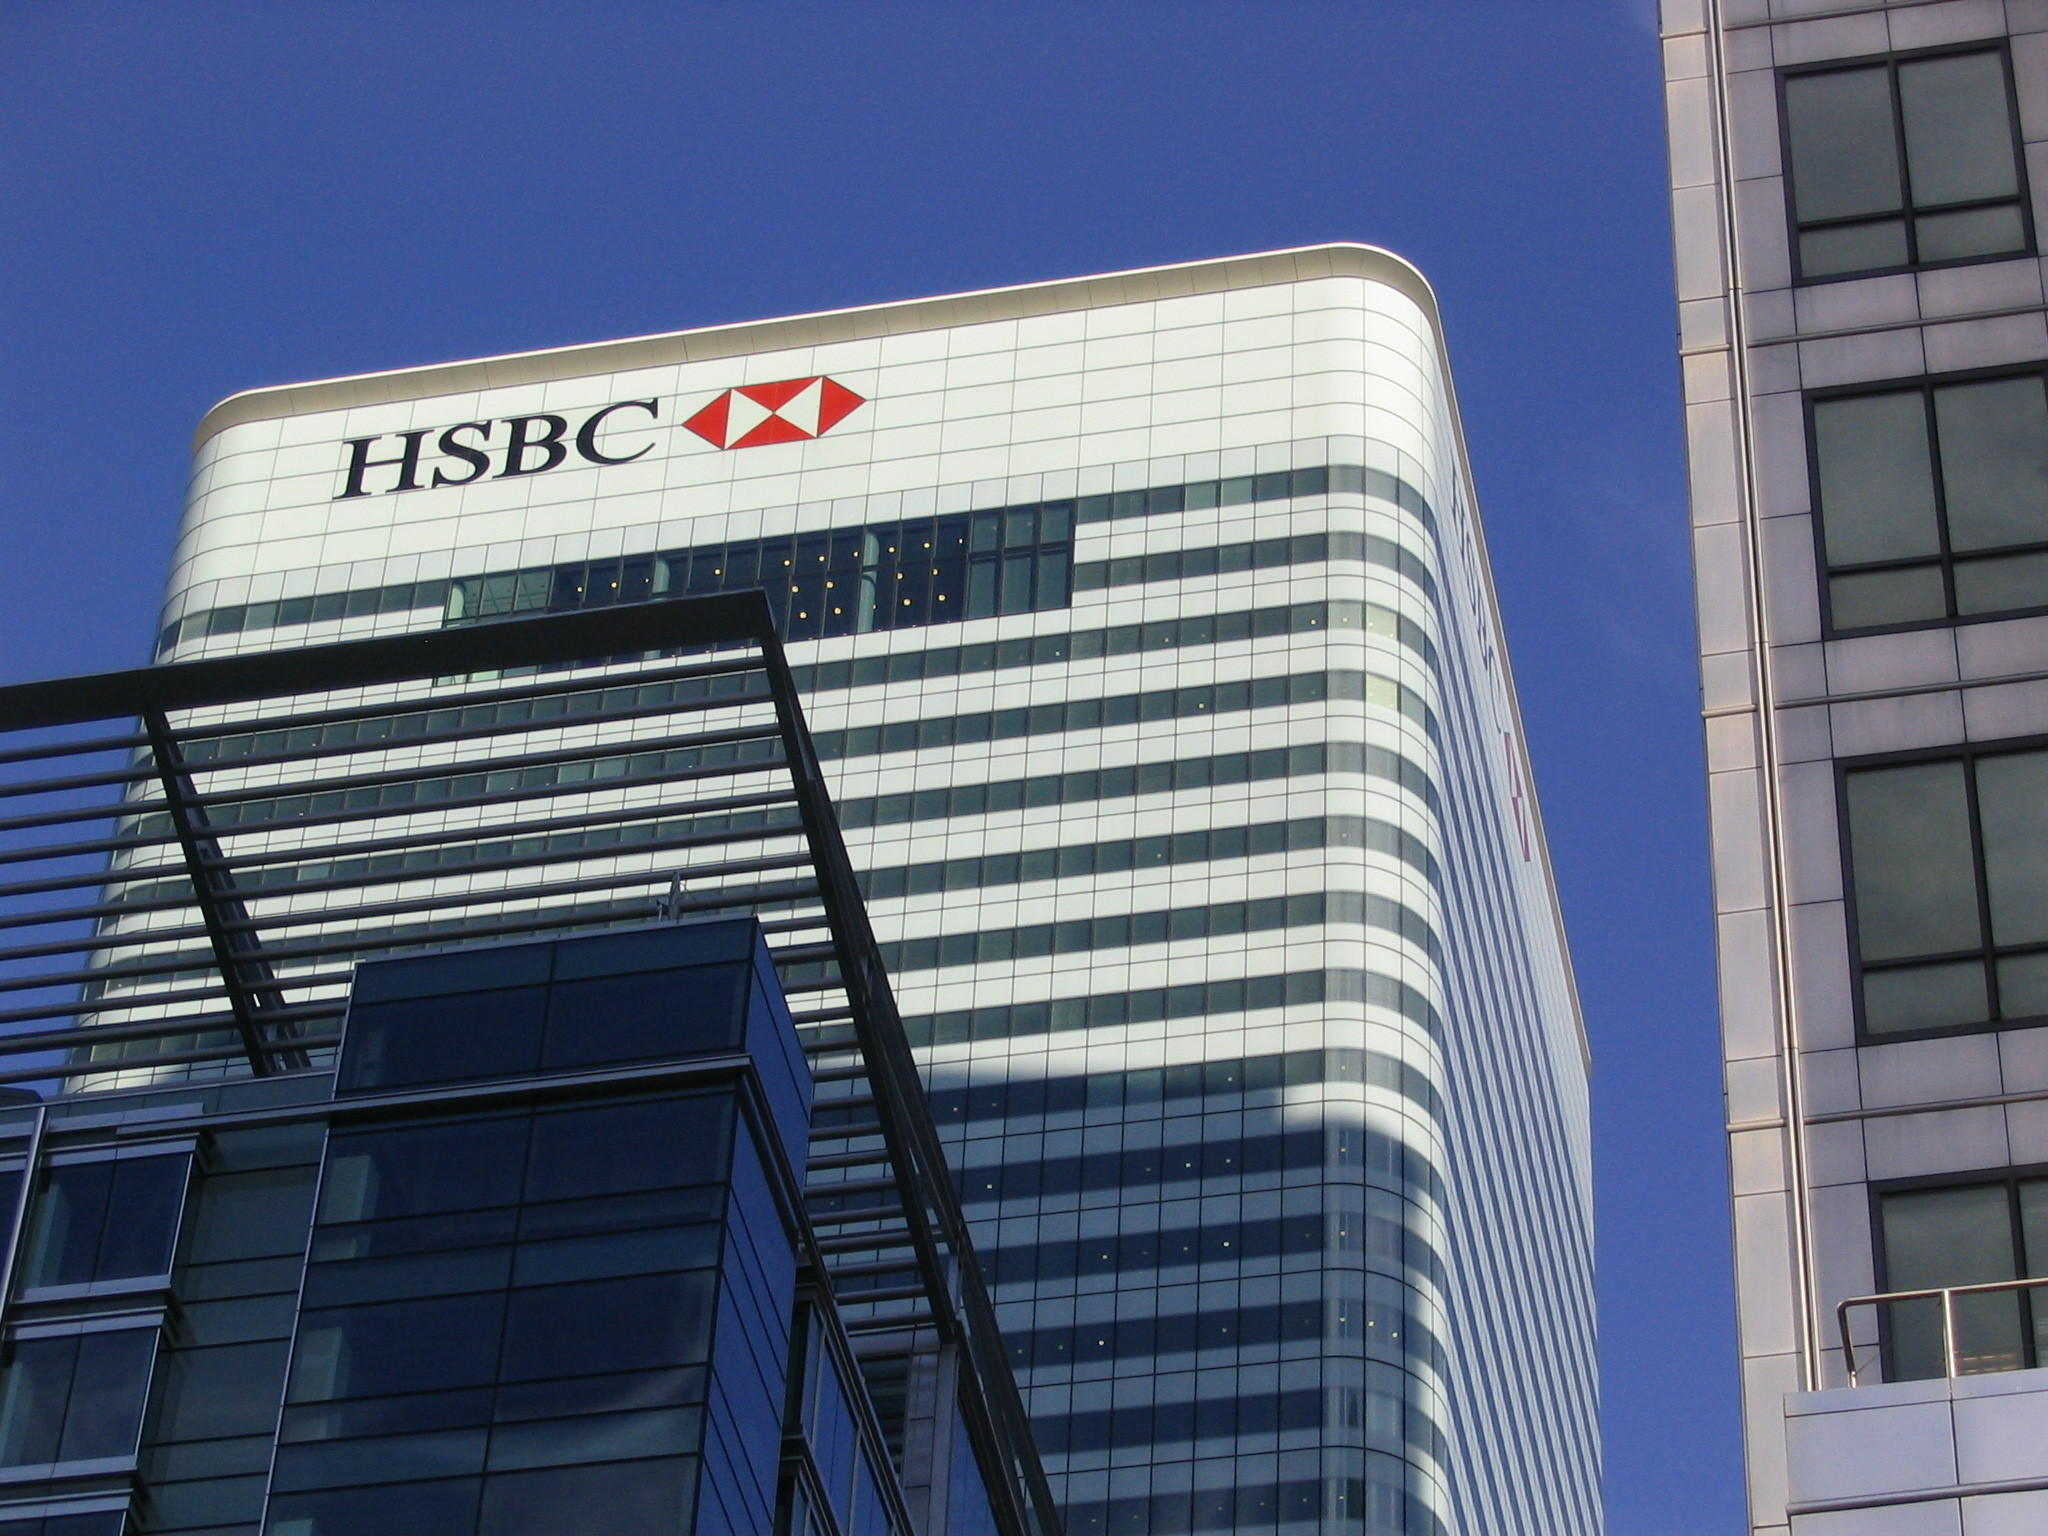 HSBC UK mobile banking is 'recovering' following a glitch, TSB Bank